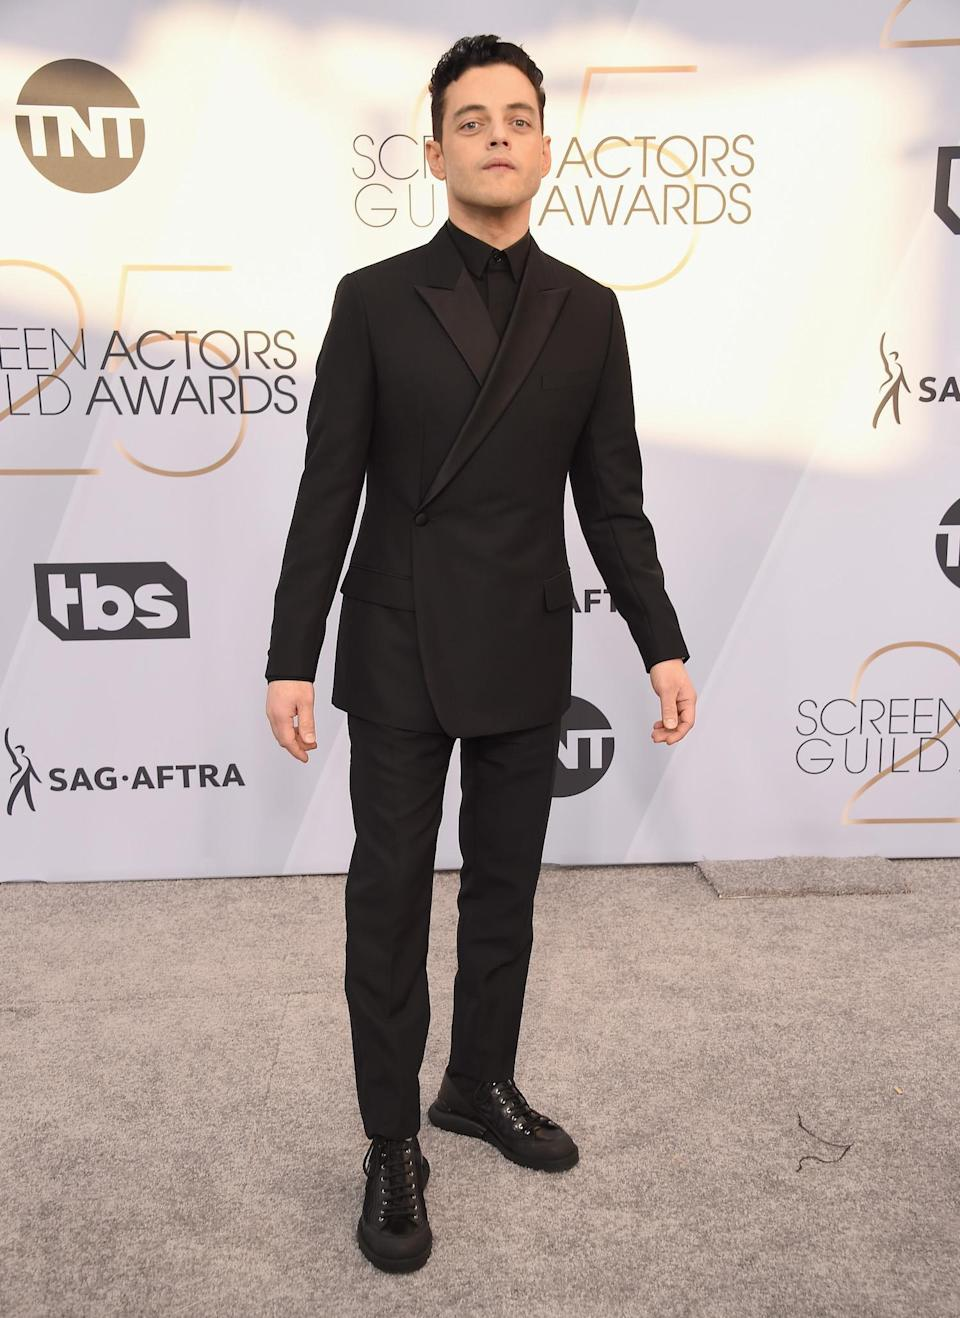 <p><em>Bohemian Rhapsody</em> star and nominee Rami Malek looked put together at the 2019 Annual Screen Actors Guild Awards in Los Angeles. (Photo: Getty Images) </p>